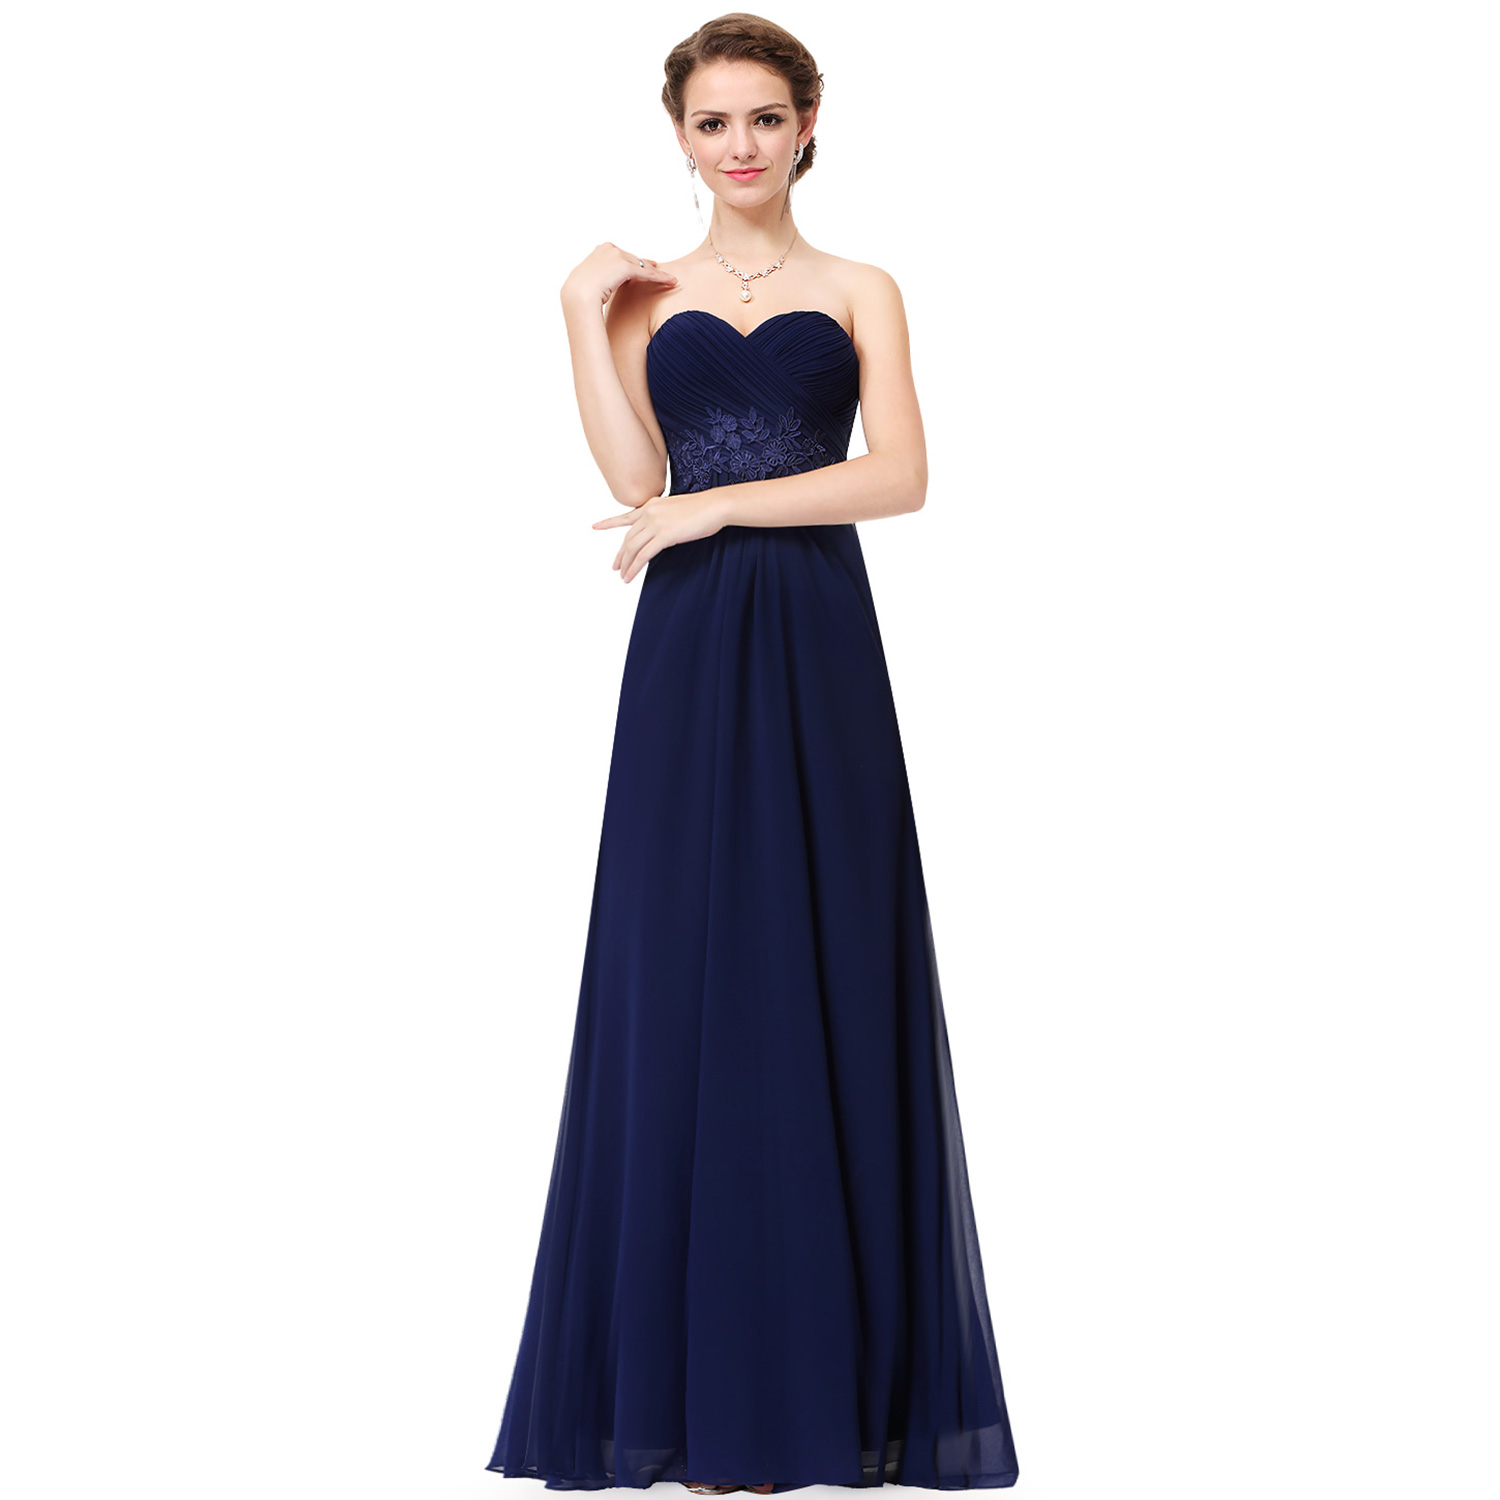 Women 39 s navy blue long evening party wedding bridesmaid for Long navy dress for wedding